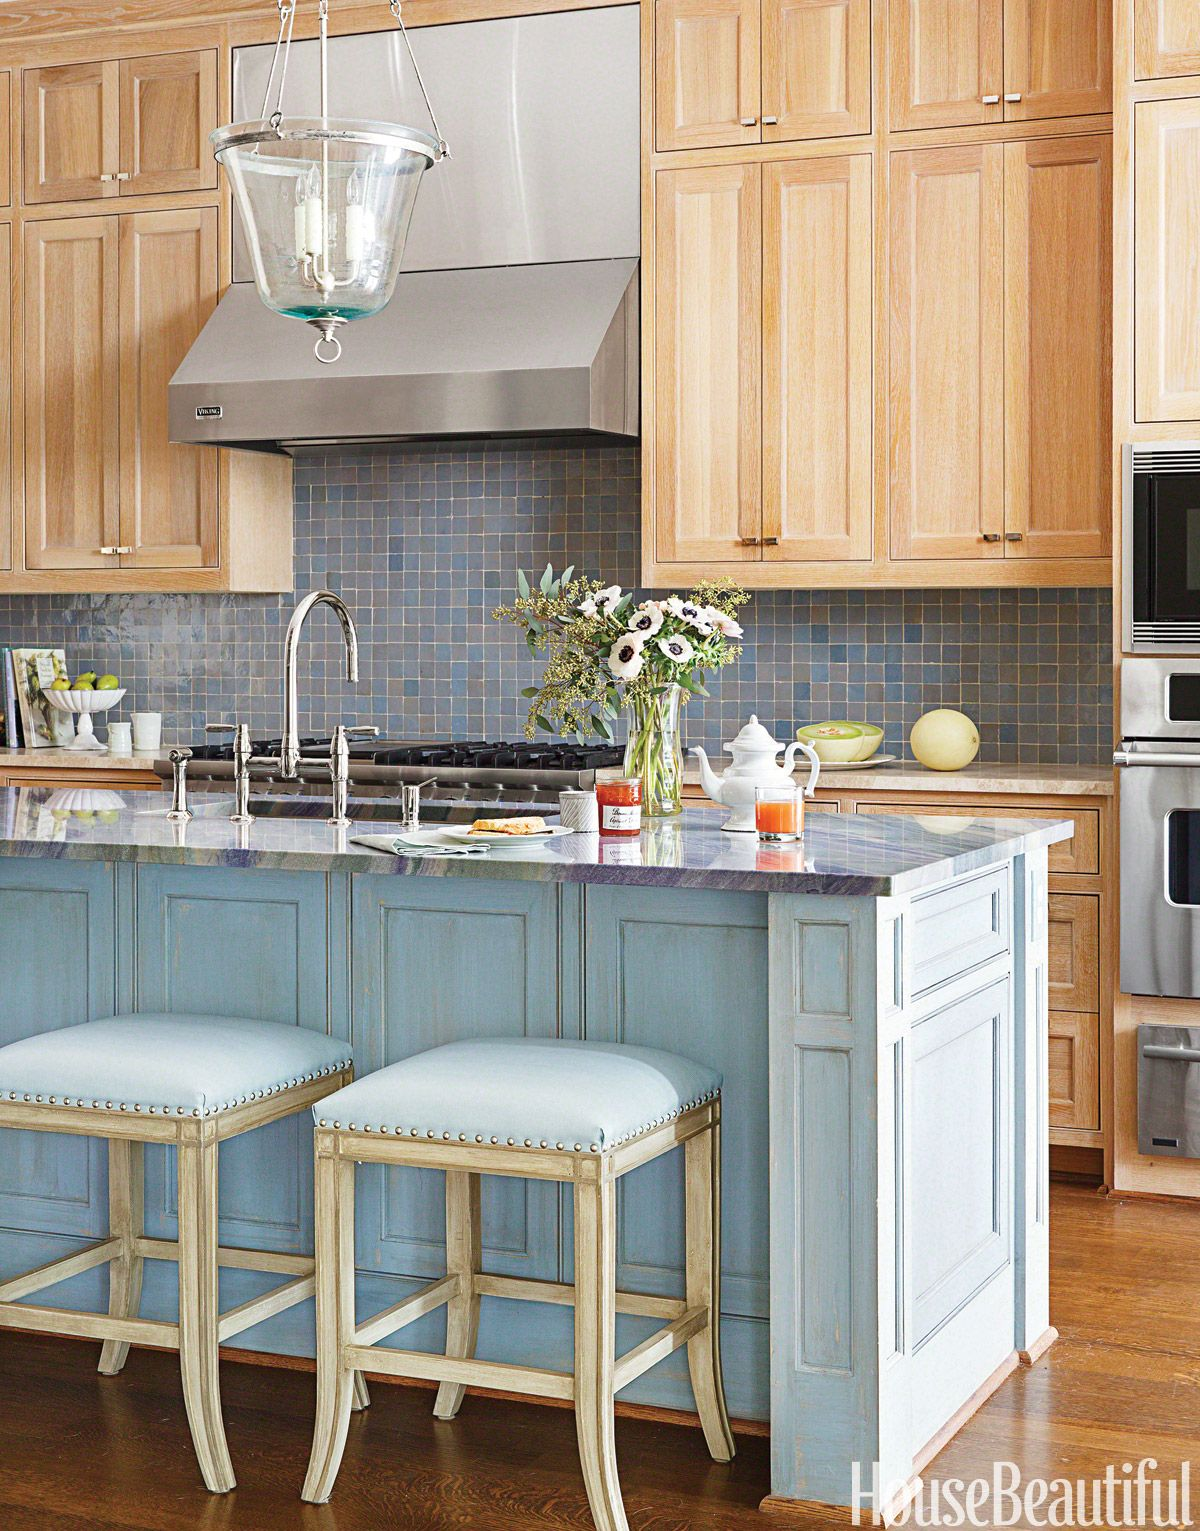 Backsplash Kitchen Ideas 53 Best Kitchen Backsplash Ideas  Tile Designs For Kitchen .